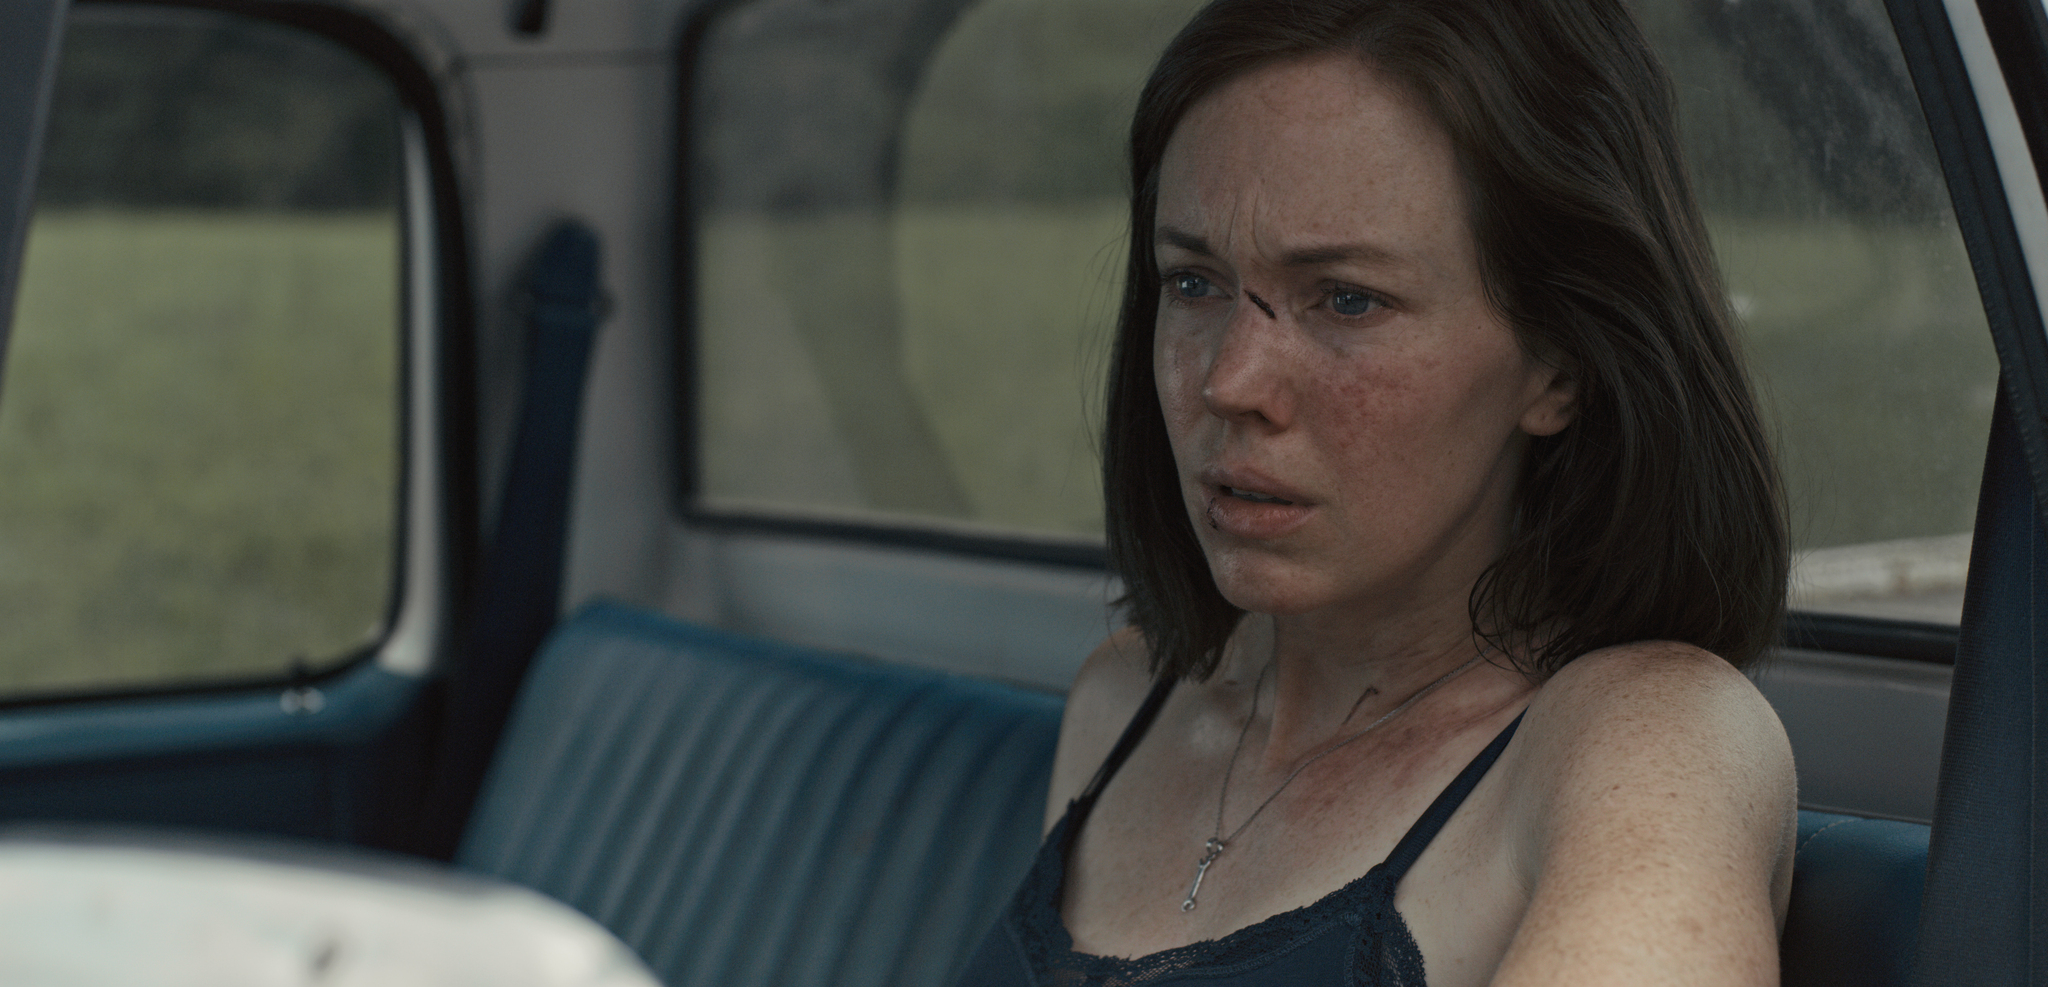 Blood on Her Name Review: Patient Southern gothic tale is best served slow